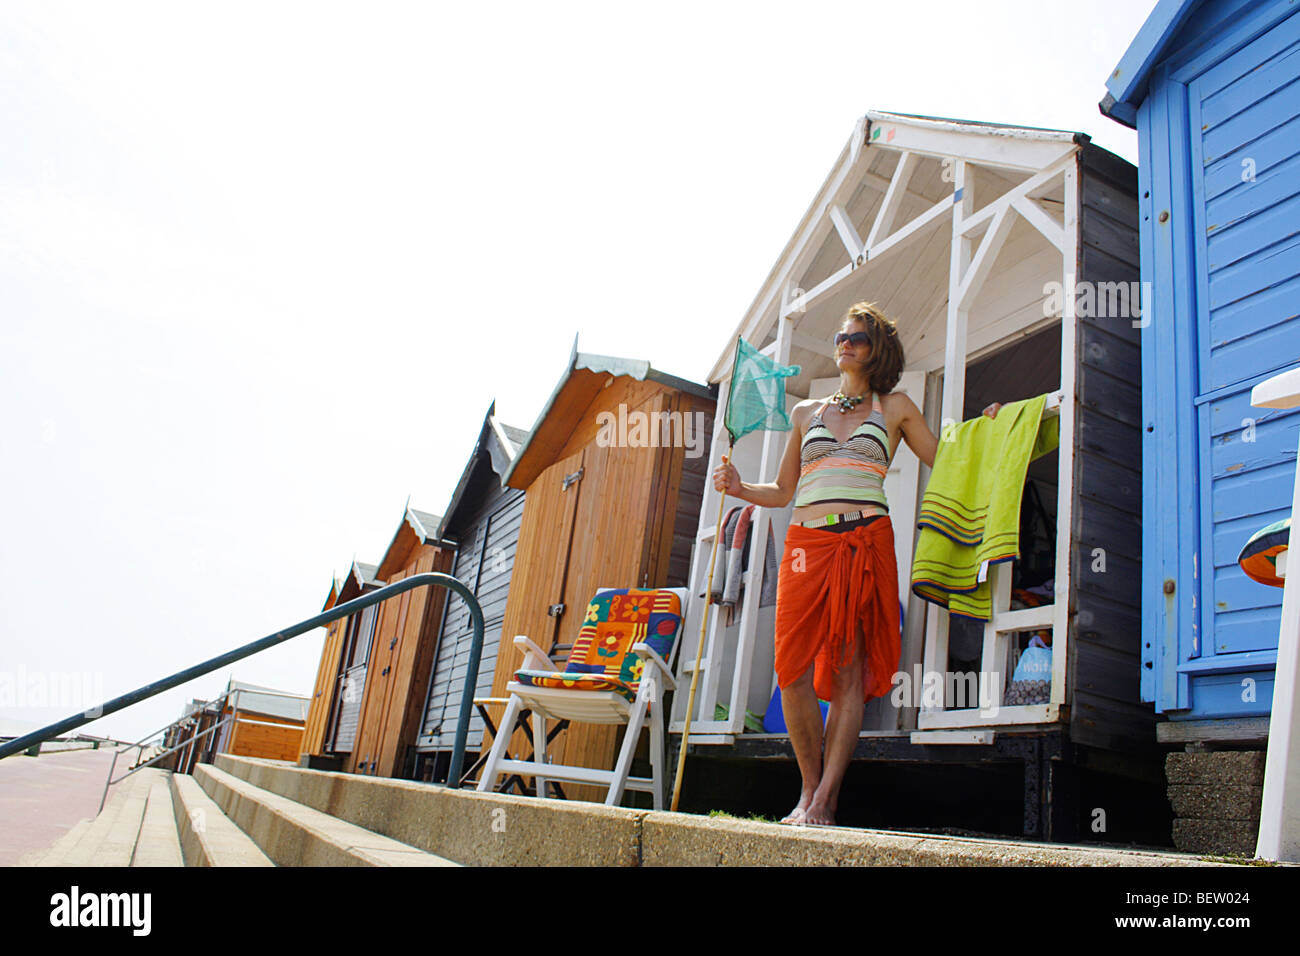 woman standing outside an English beach hut on an English summer's day - Stock Image